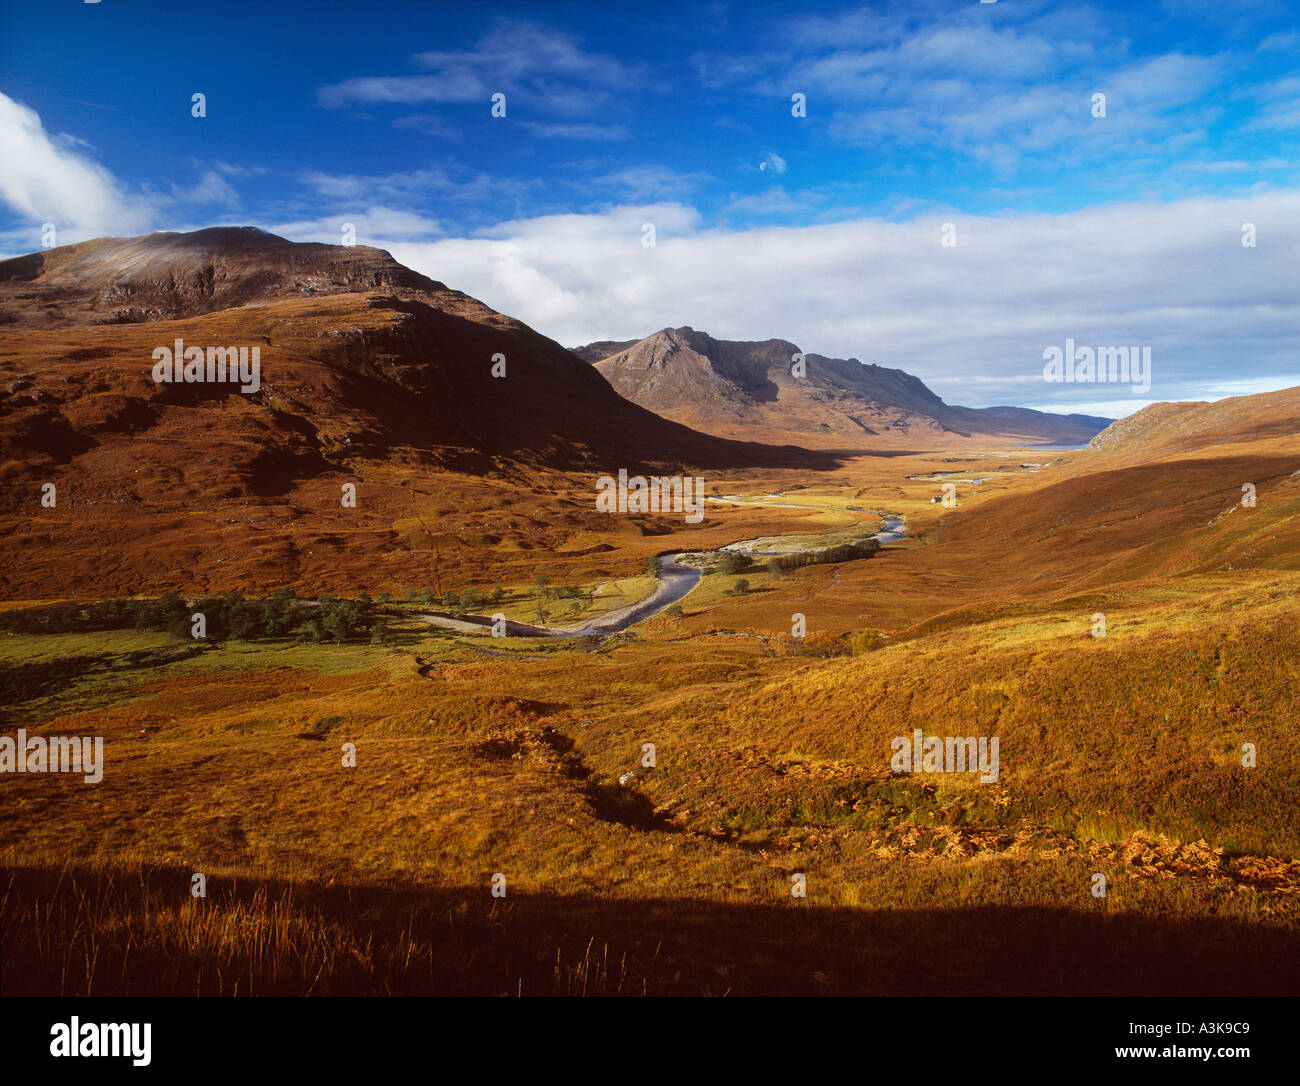 Strath na Sealga The Valley of Hunting at Shenavall Dundonnell Wester Ross Scottish Highlands - Stock Image